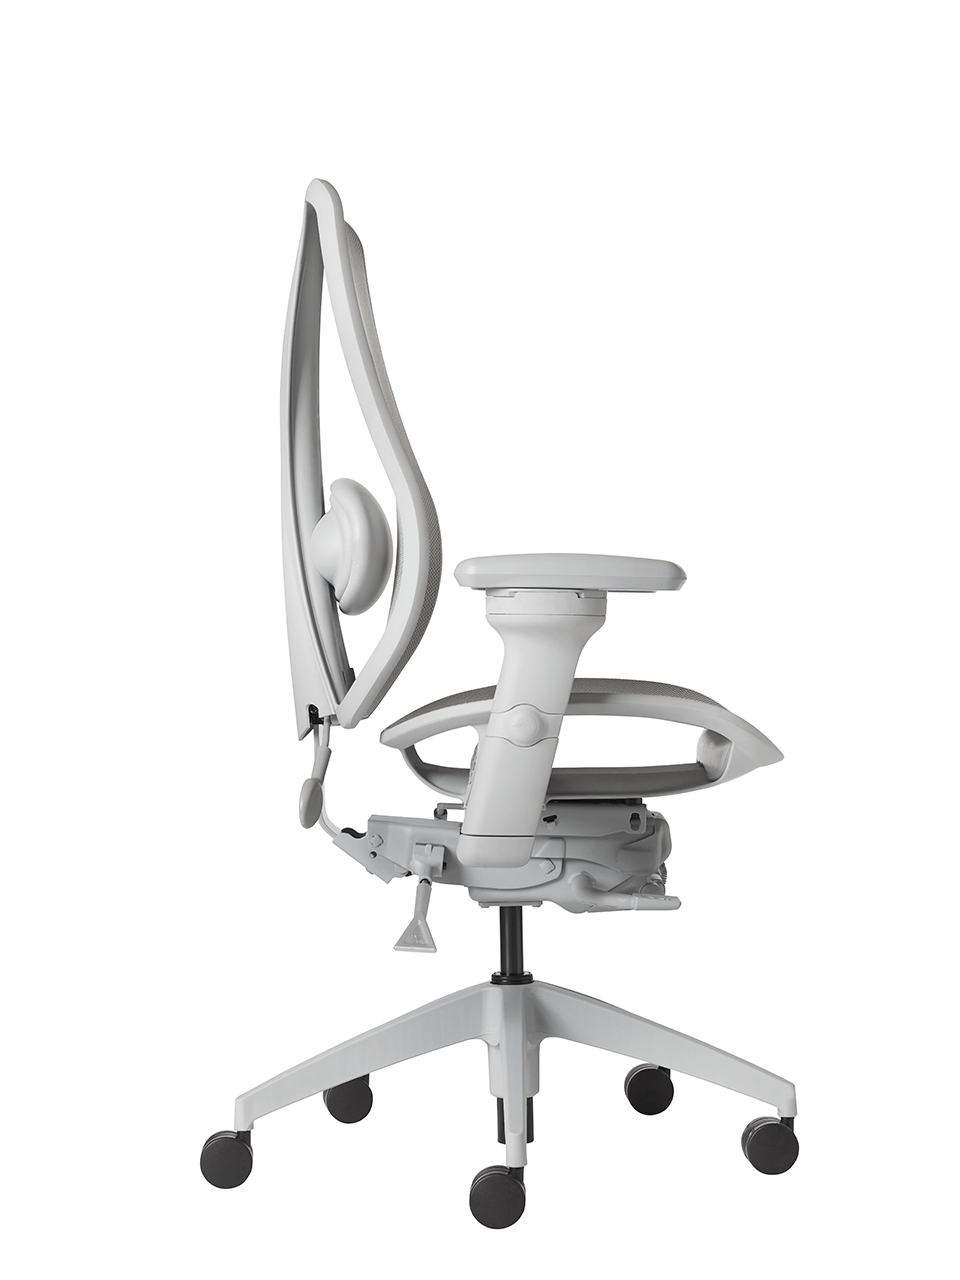 24 Hour Office Chairs 24 Hour Office Chair Tcentric Hybrid Ergonomic Chair From Ergocentric